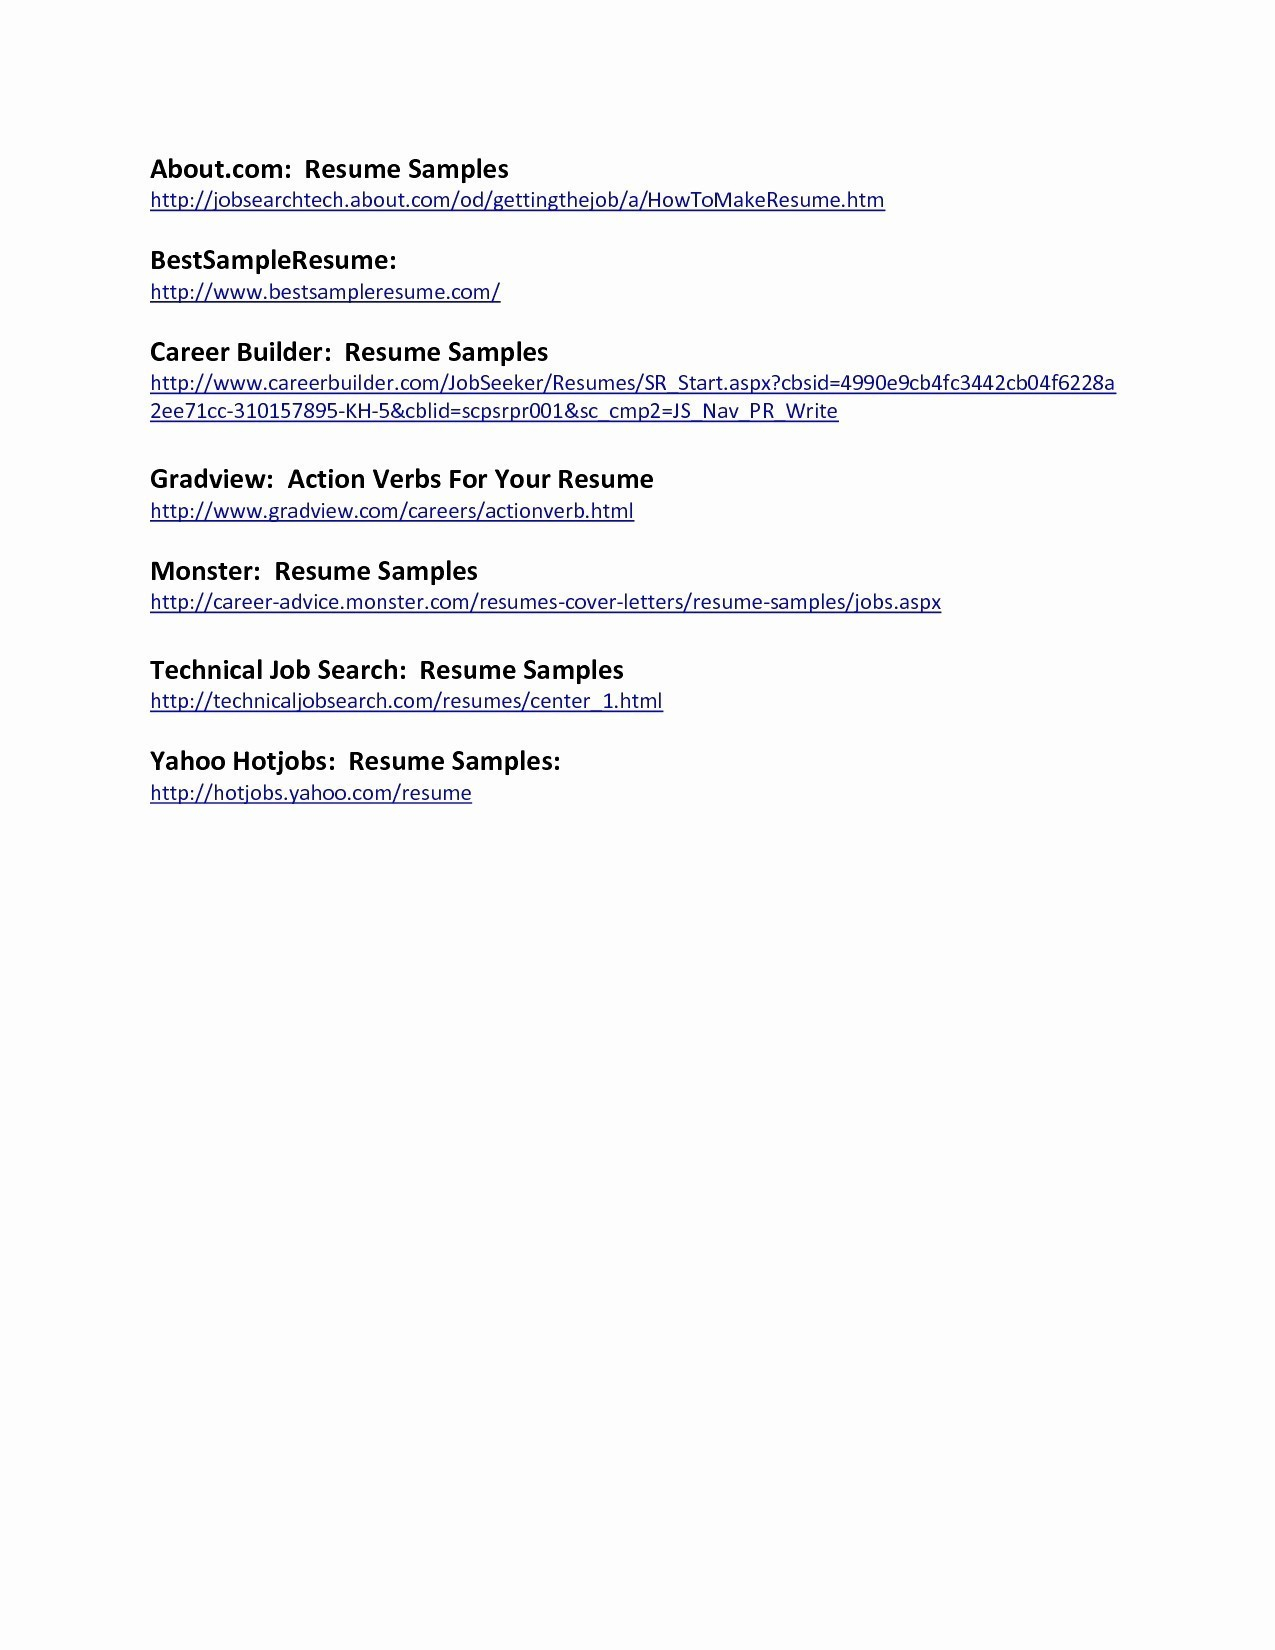 Respiratory therapist Resume Sample - Certified Respiratory therapist Resume Inspirationa Respiratory